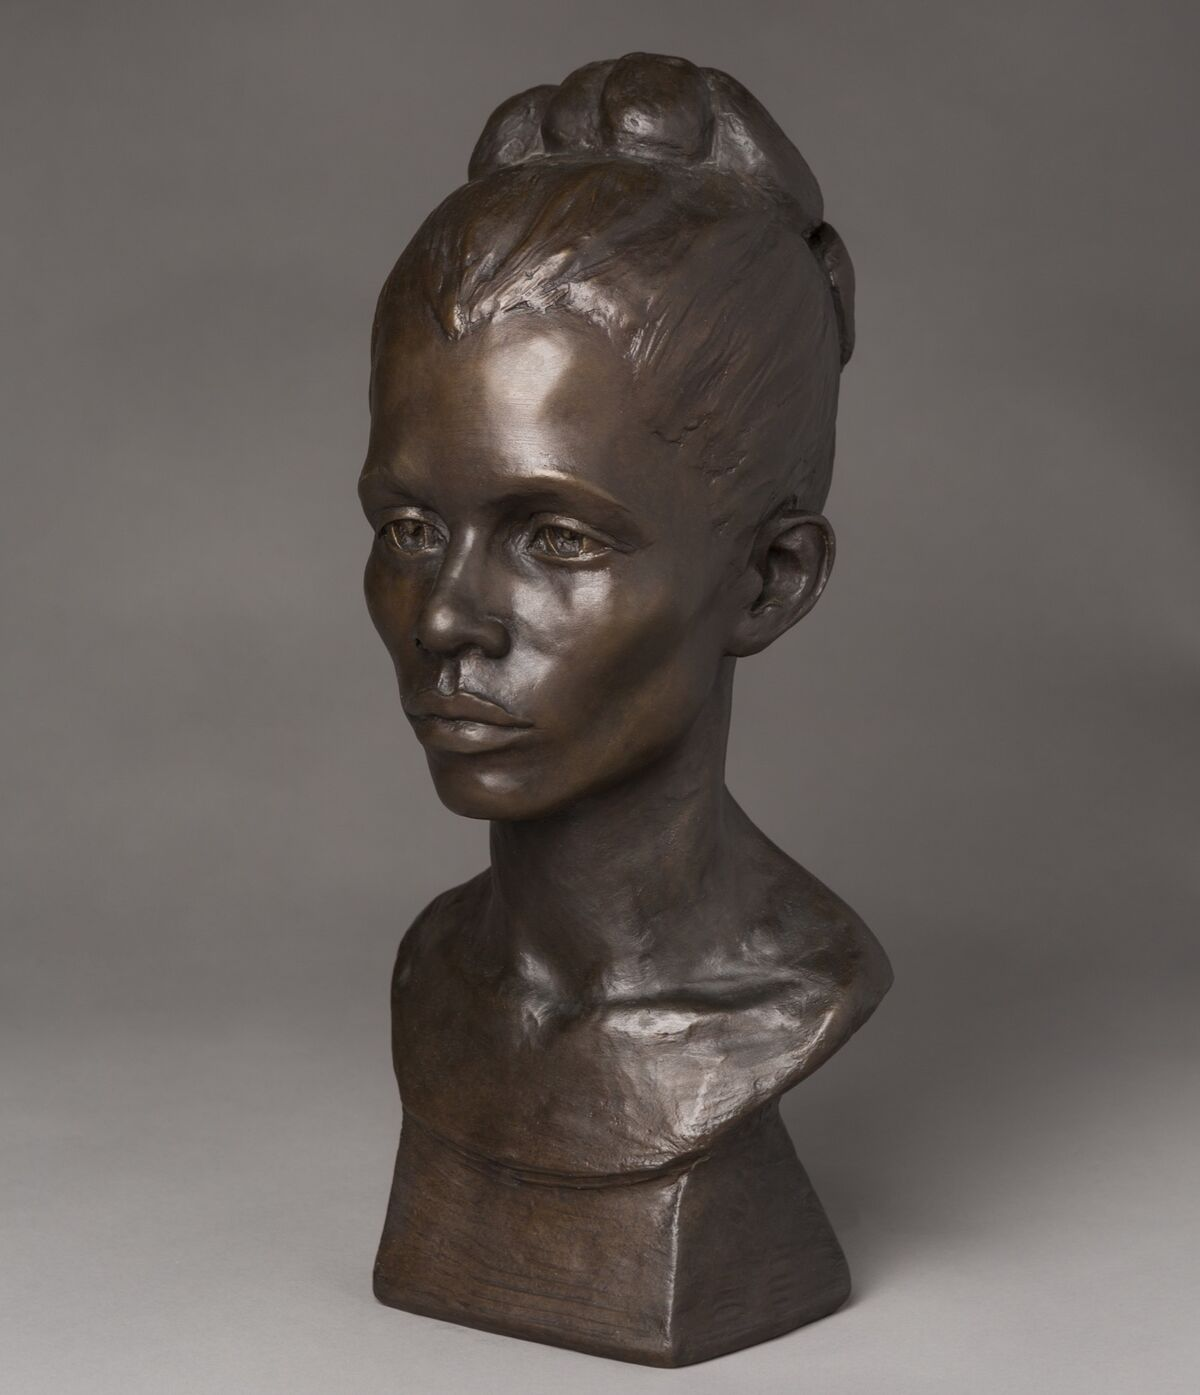 Augusta Savage, Gwendolyn Knight, 1934–35. Courtesy of the Walter O. Evans Collection of African American Art.